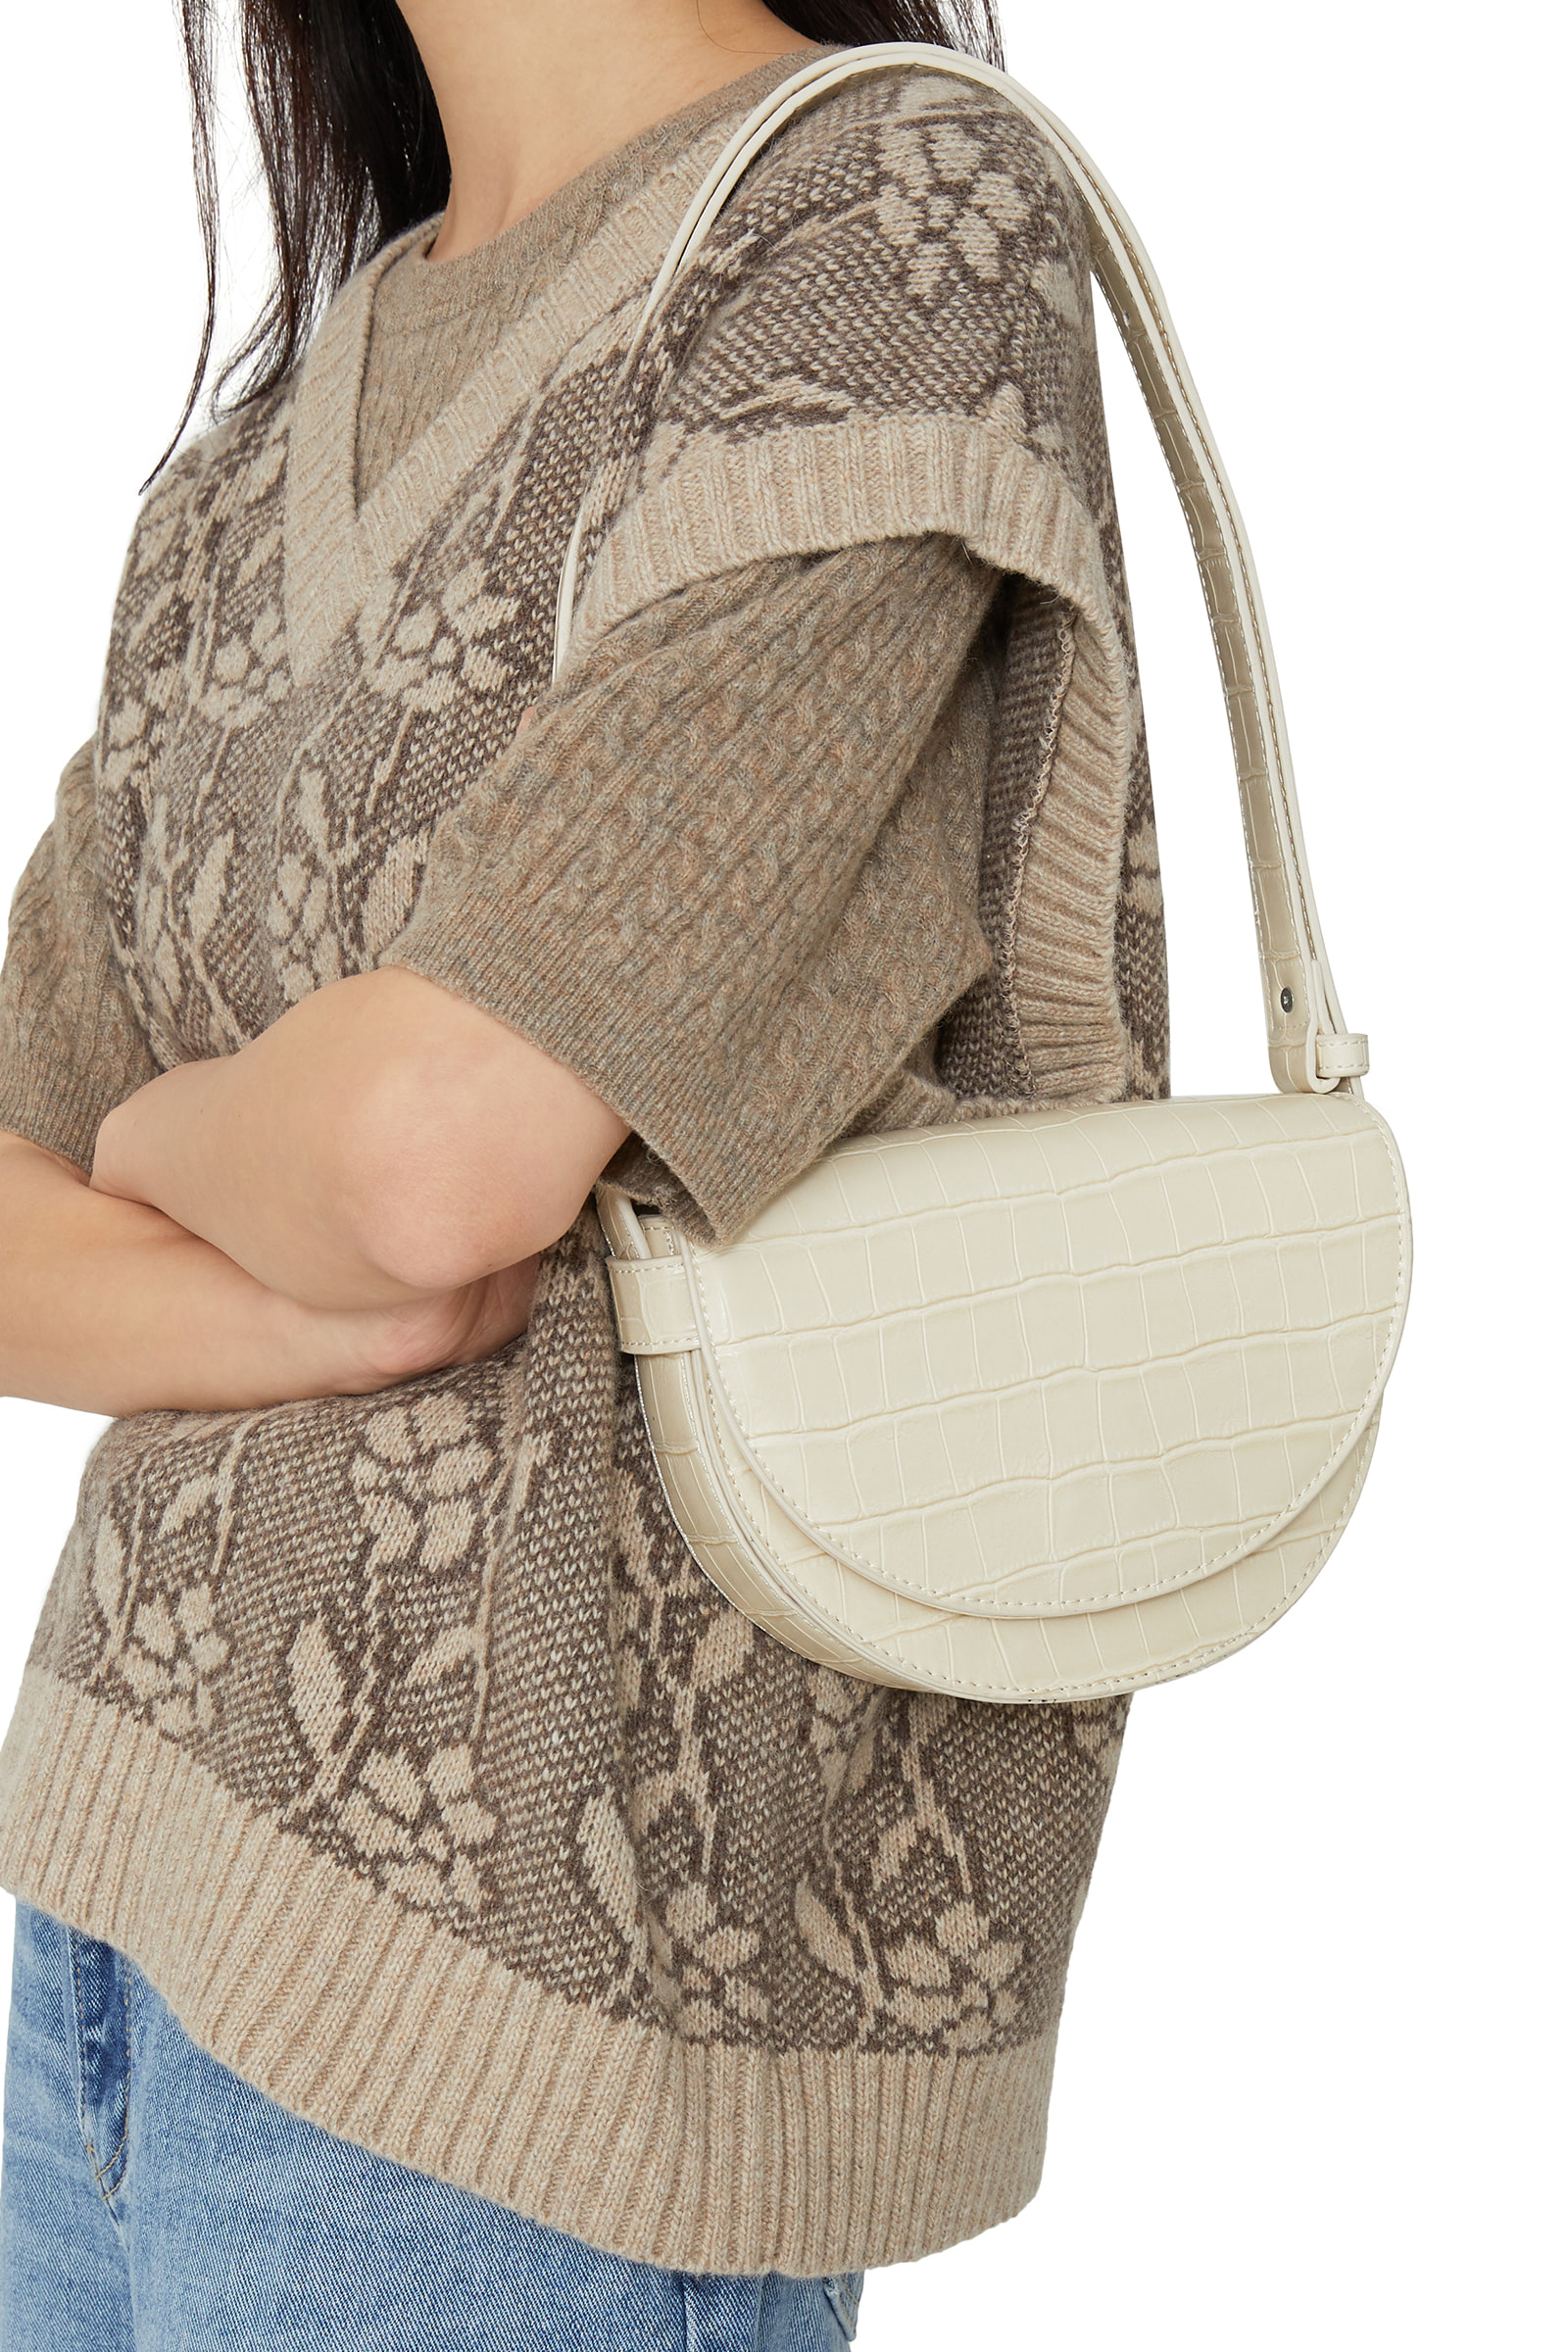 Loa Animal Pattern Half Moon Shoulder Bag